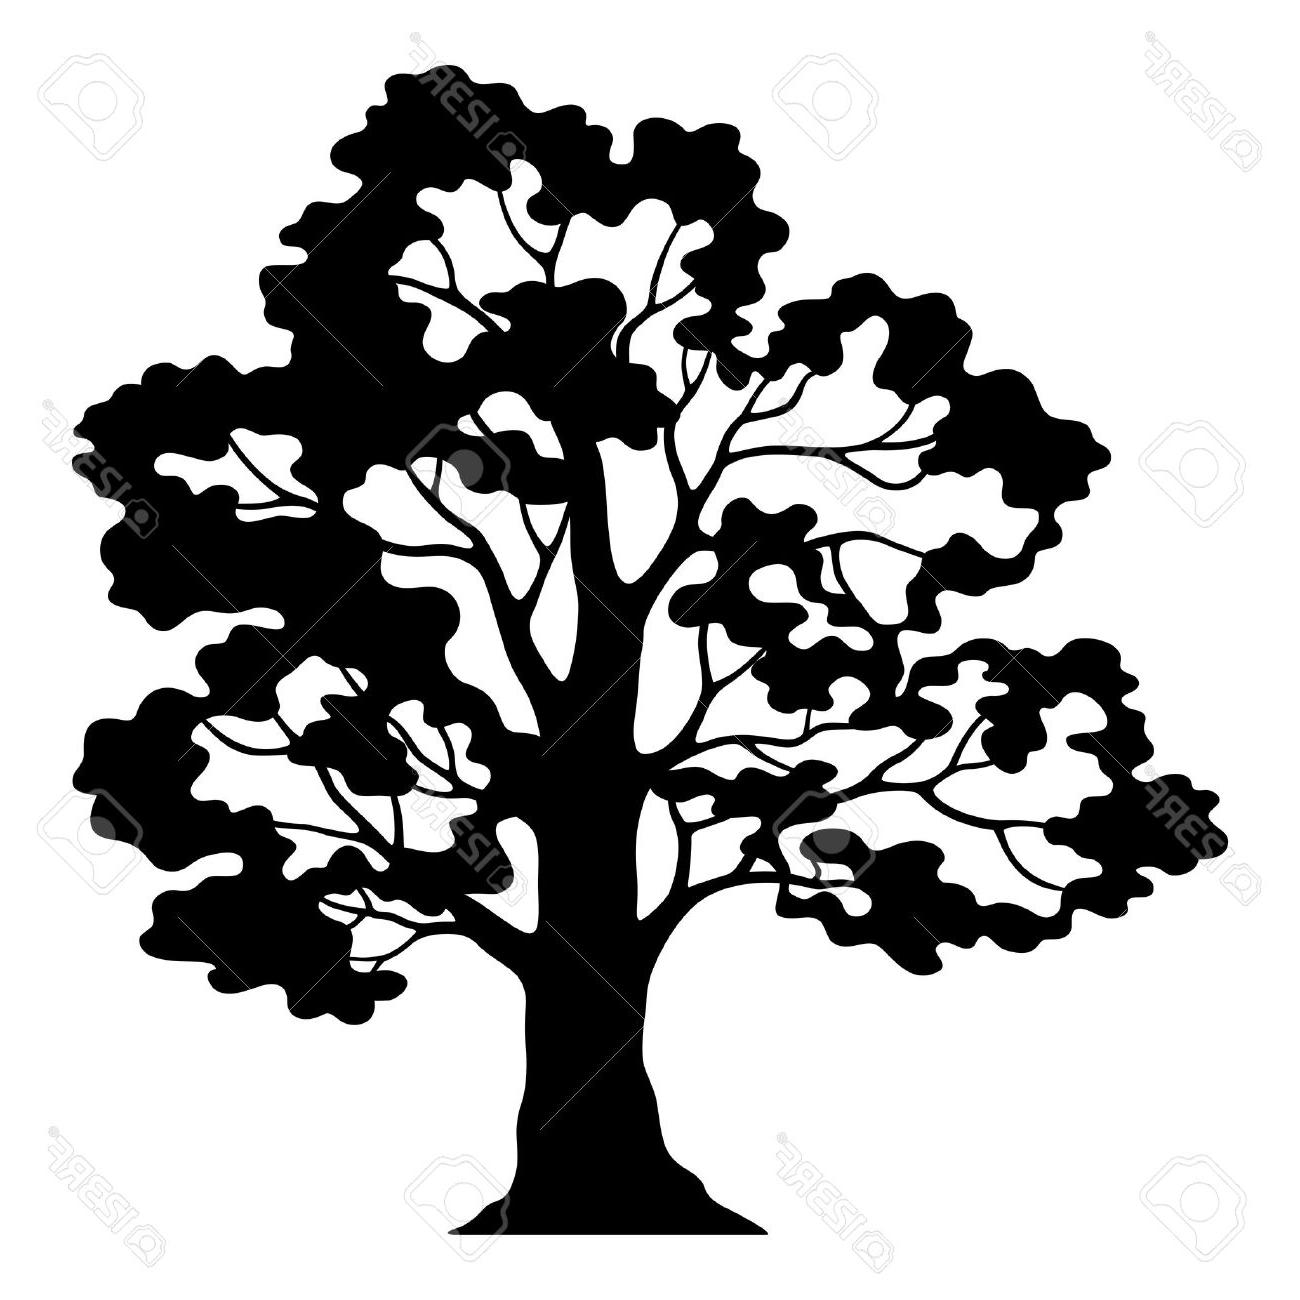 Tree silhouette clipart free graphic freeuse library Tree Silhouette Clipart | Free download best Tree Silhouette ... graphic freeuse library